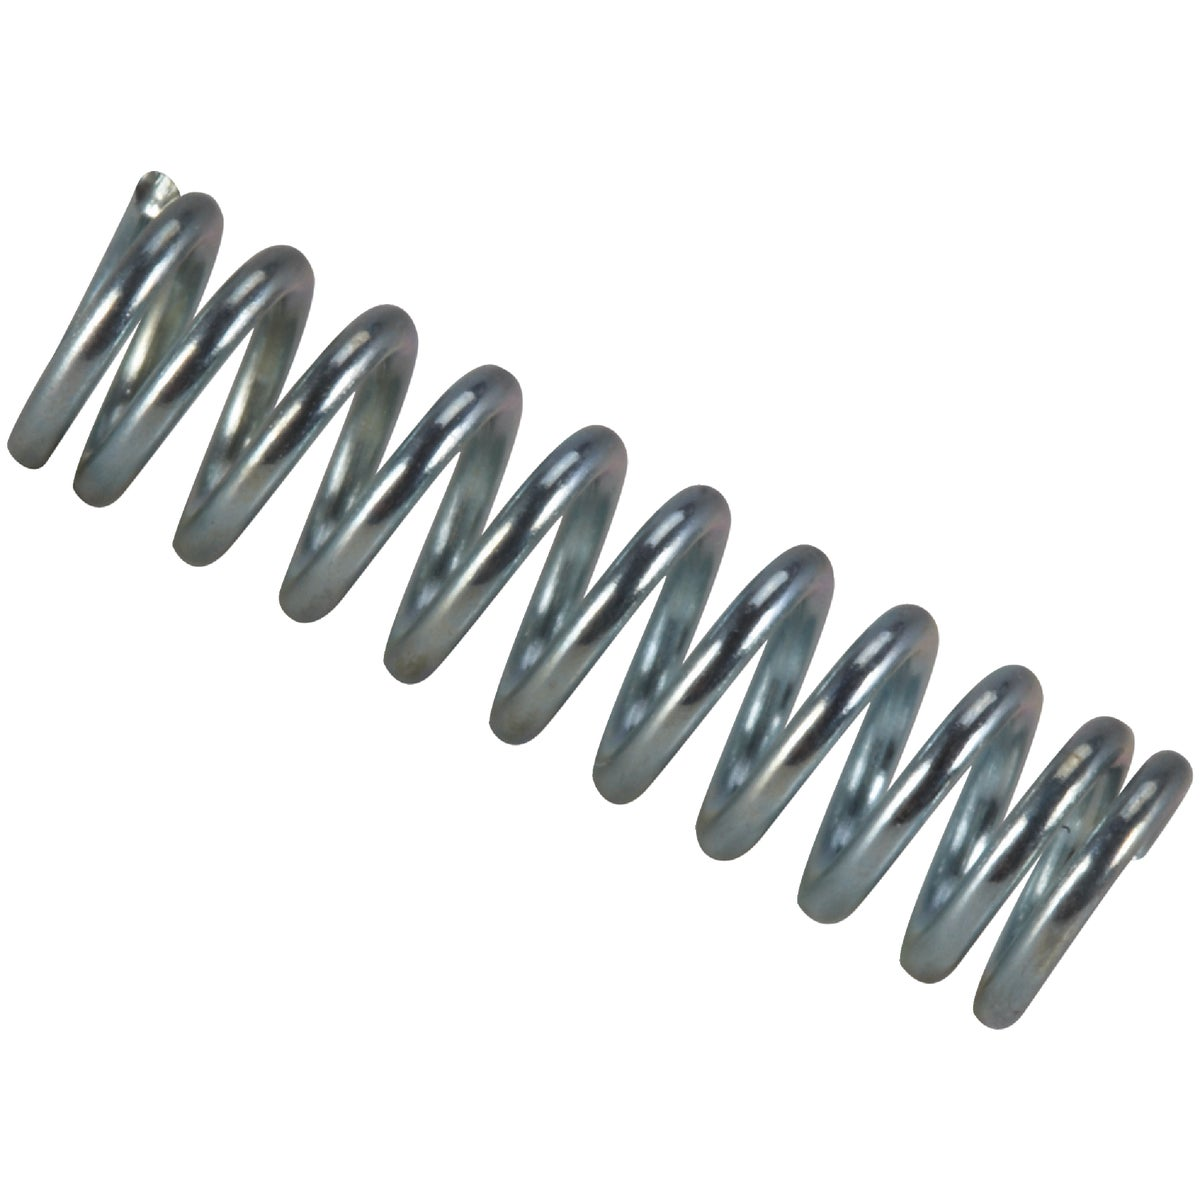 COMPRESSION SPRING - C-850 by Century Spring Corp